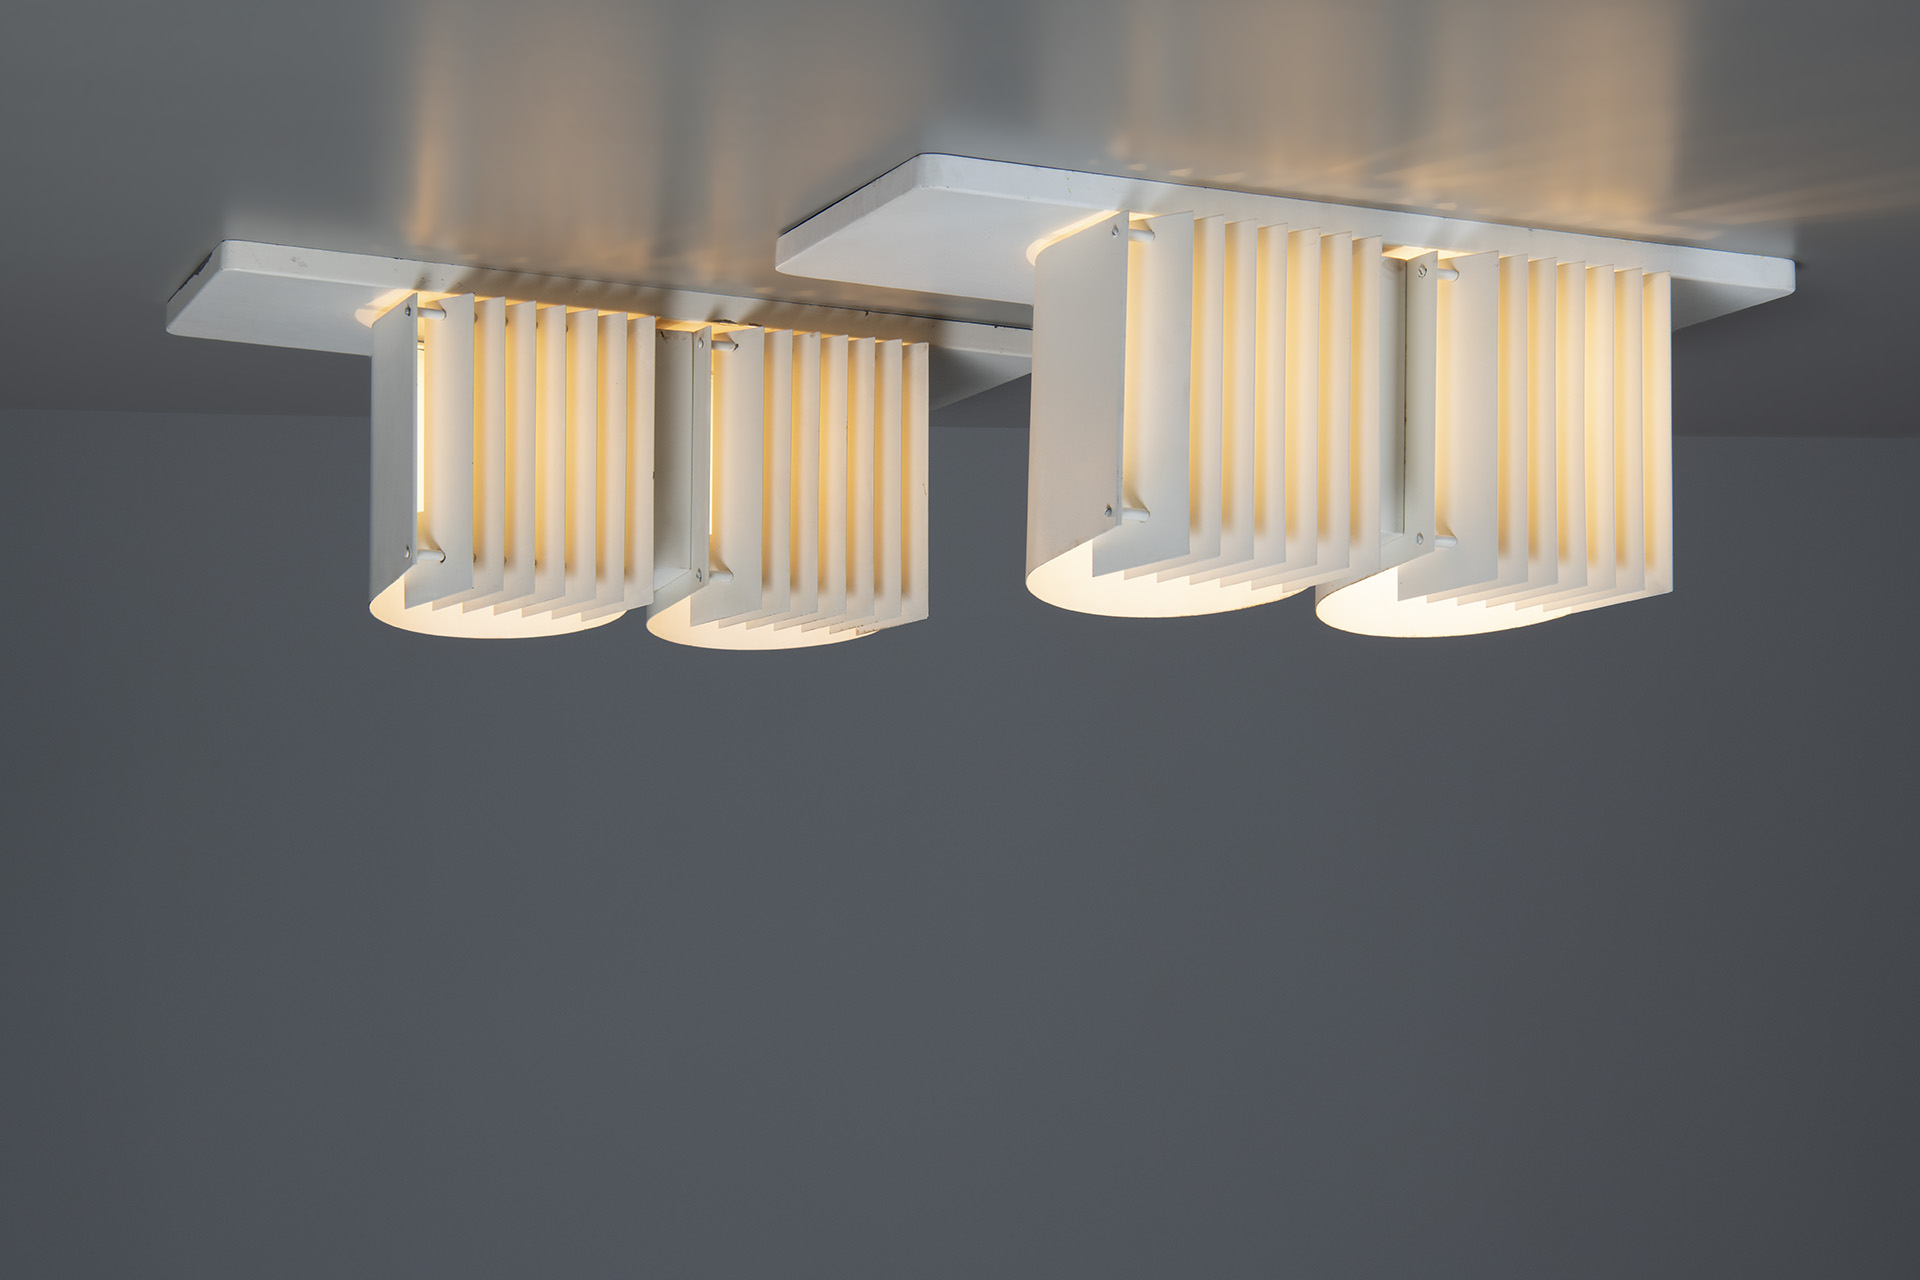 Pair of Ceiling Lamps, Model no. AE 7055